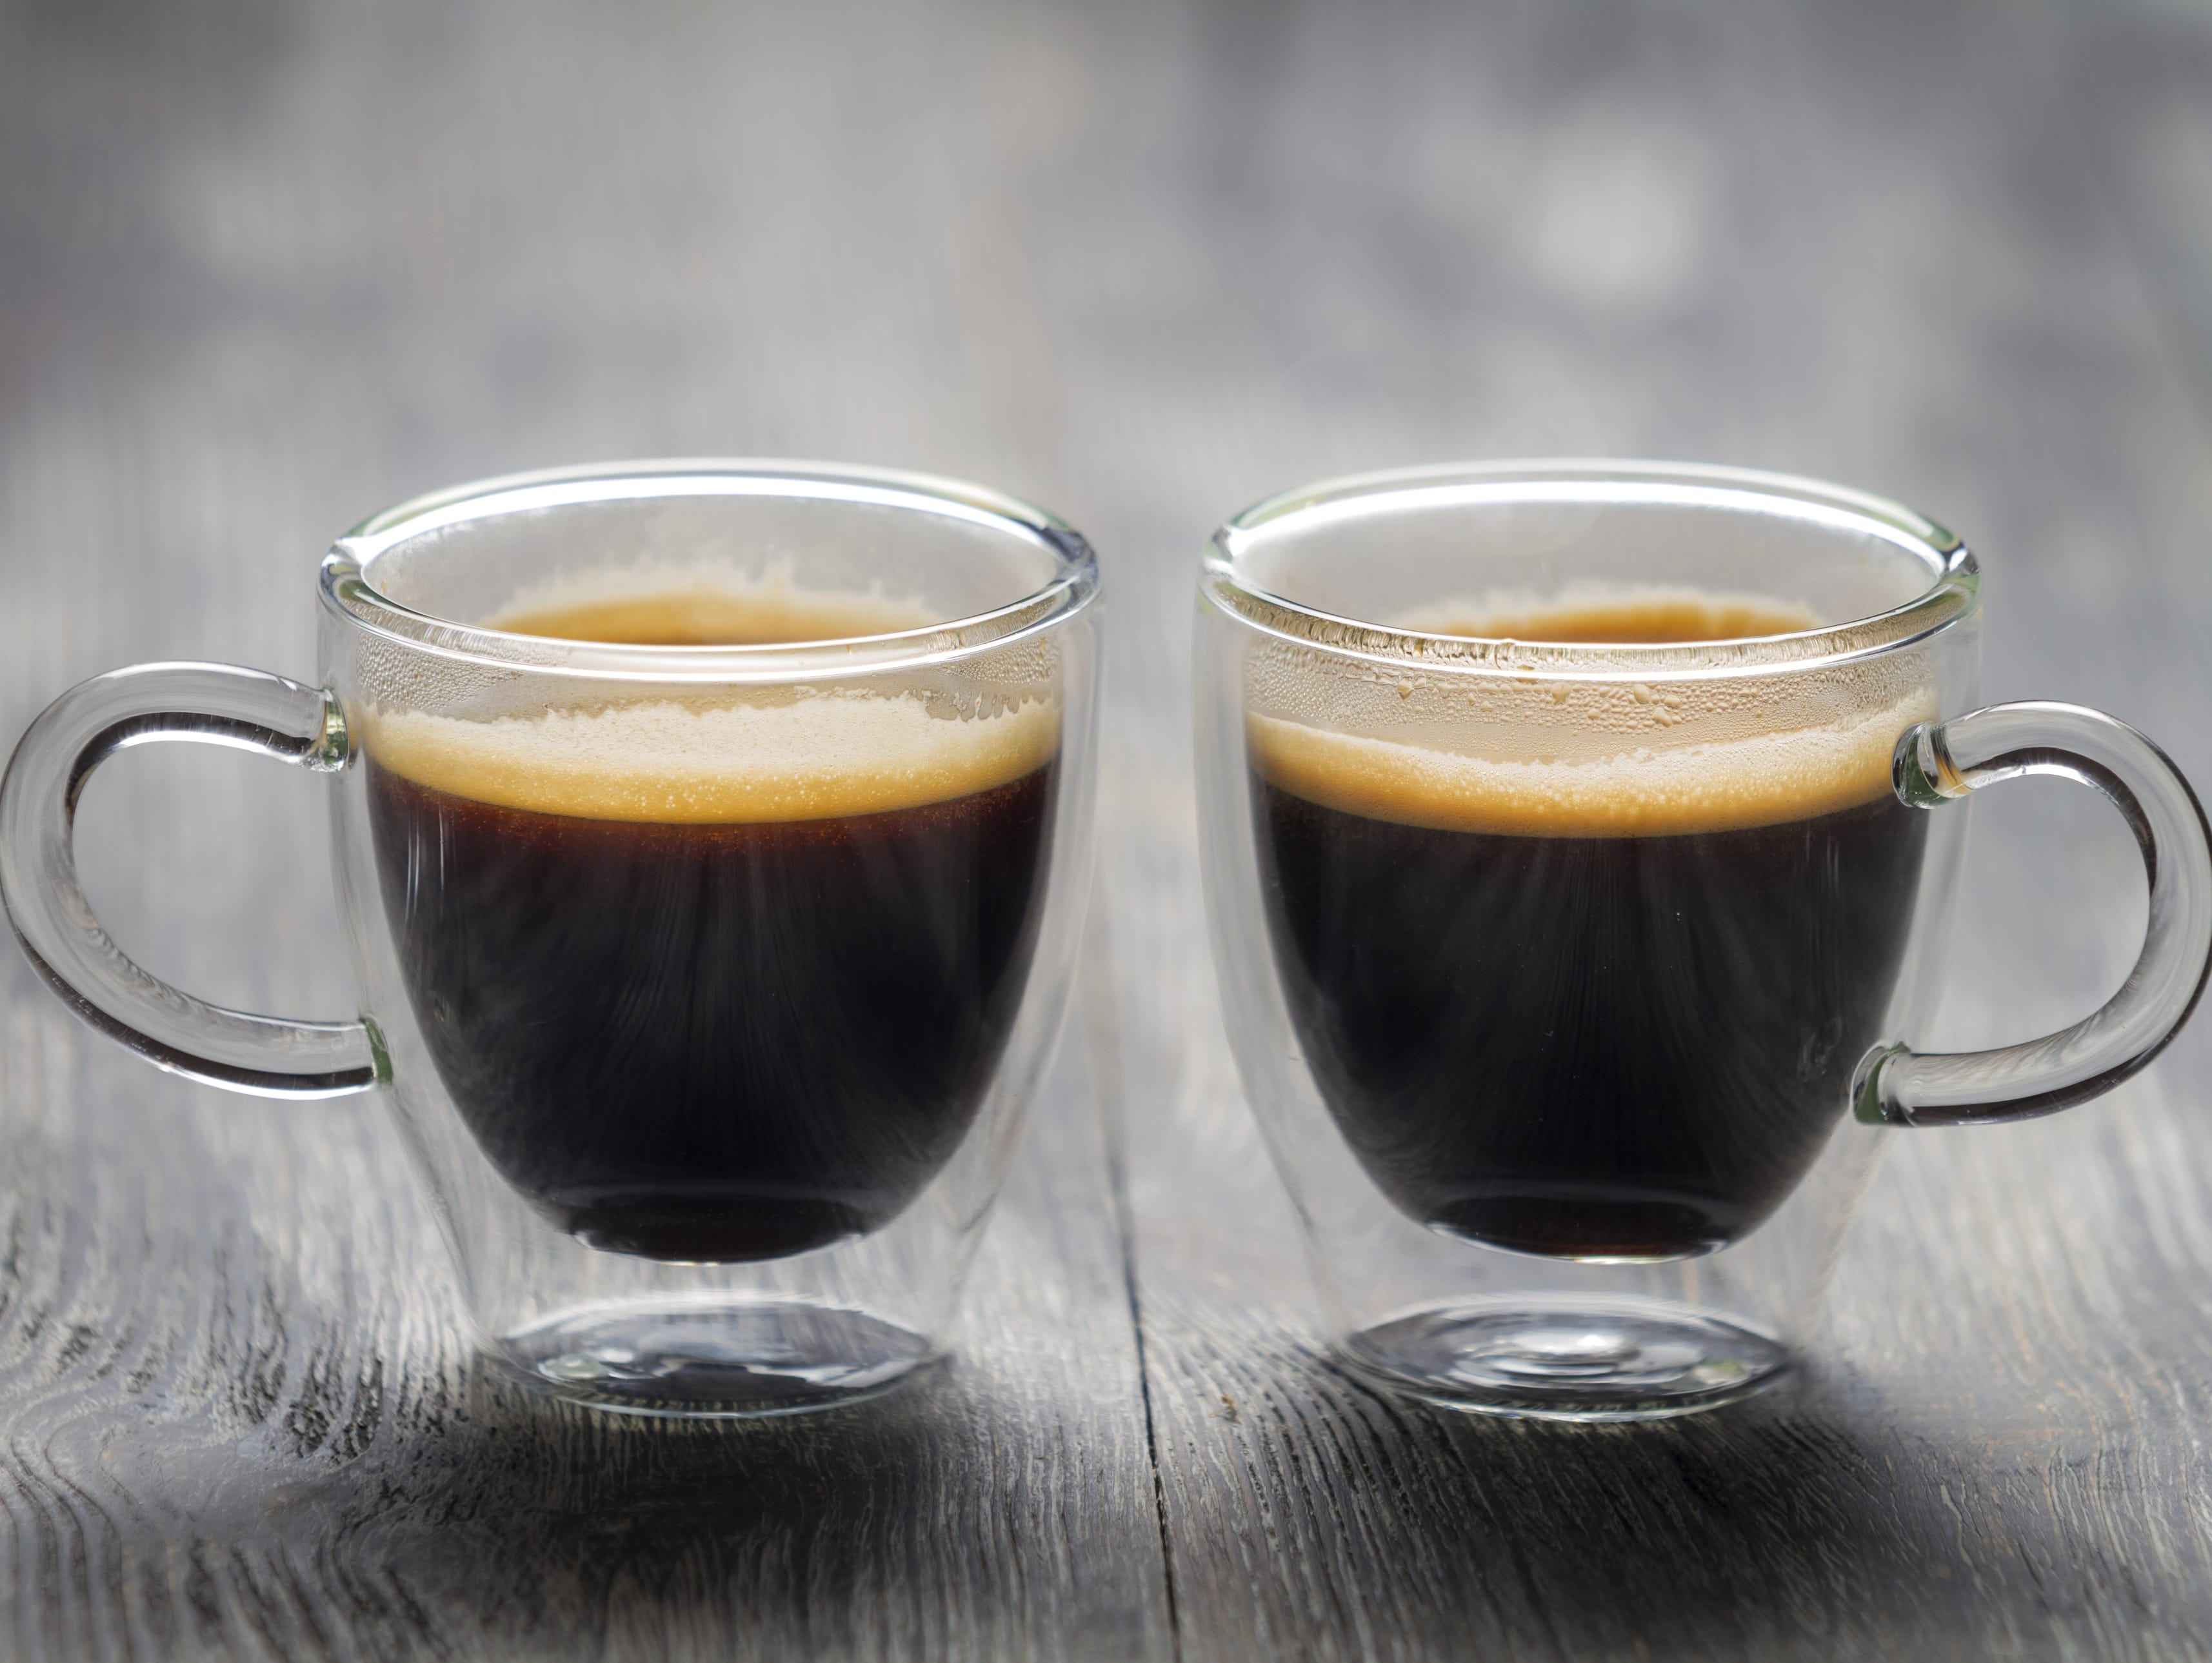 Extroverts may benefit from a cup or two of coffee before a meeting, but it makes introverts perform less well.